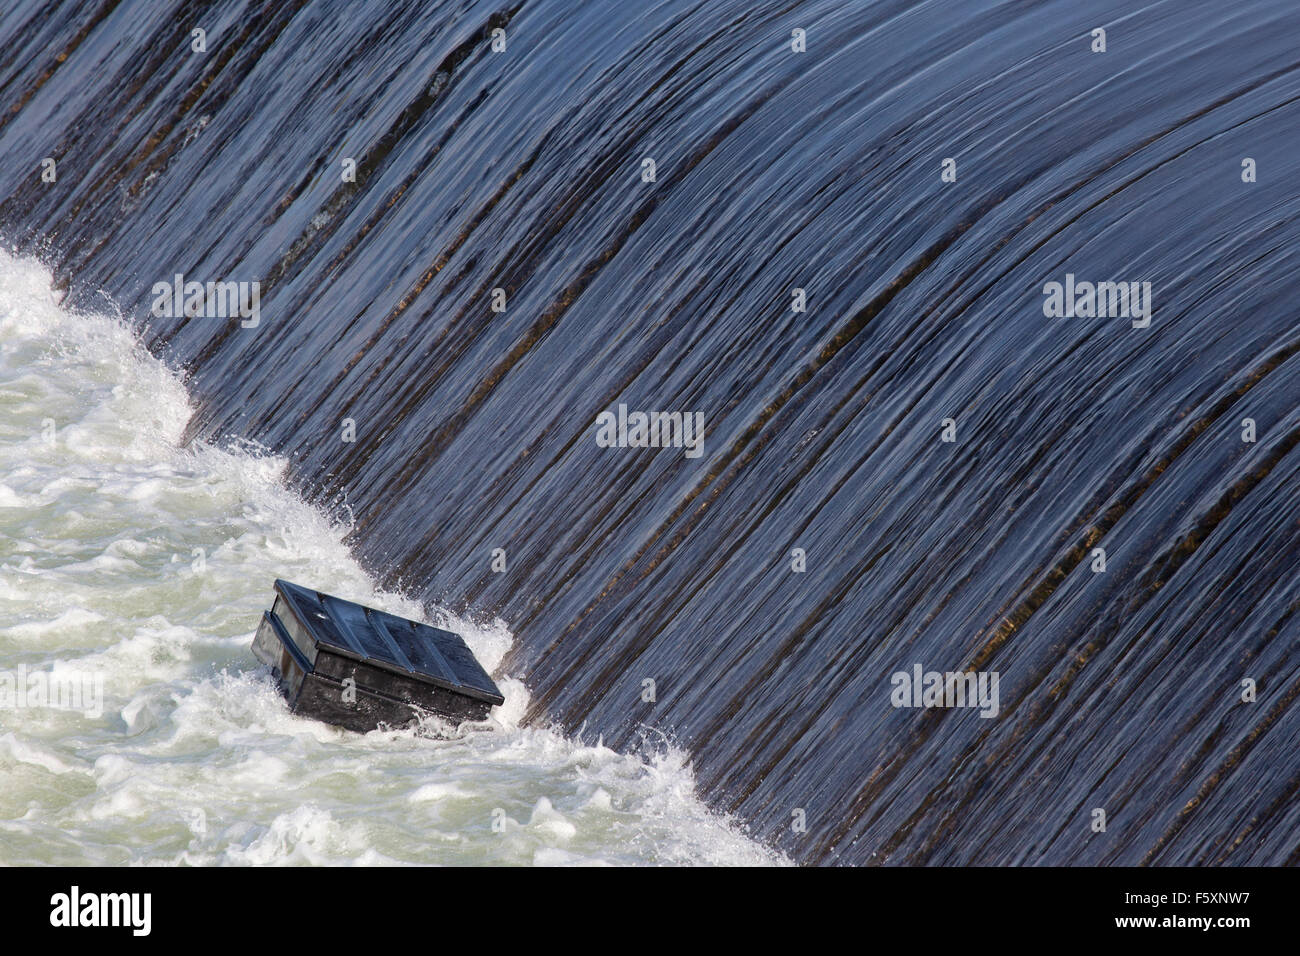 Large item trapped in the powerful recirculating hydraulic wave of a weir on the South Saskatchewan River - Stock Image